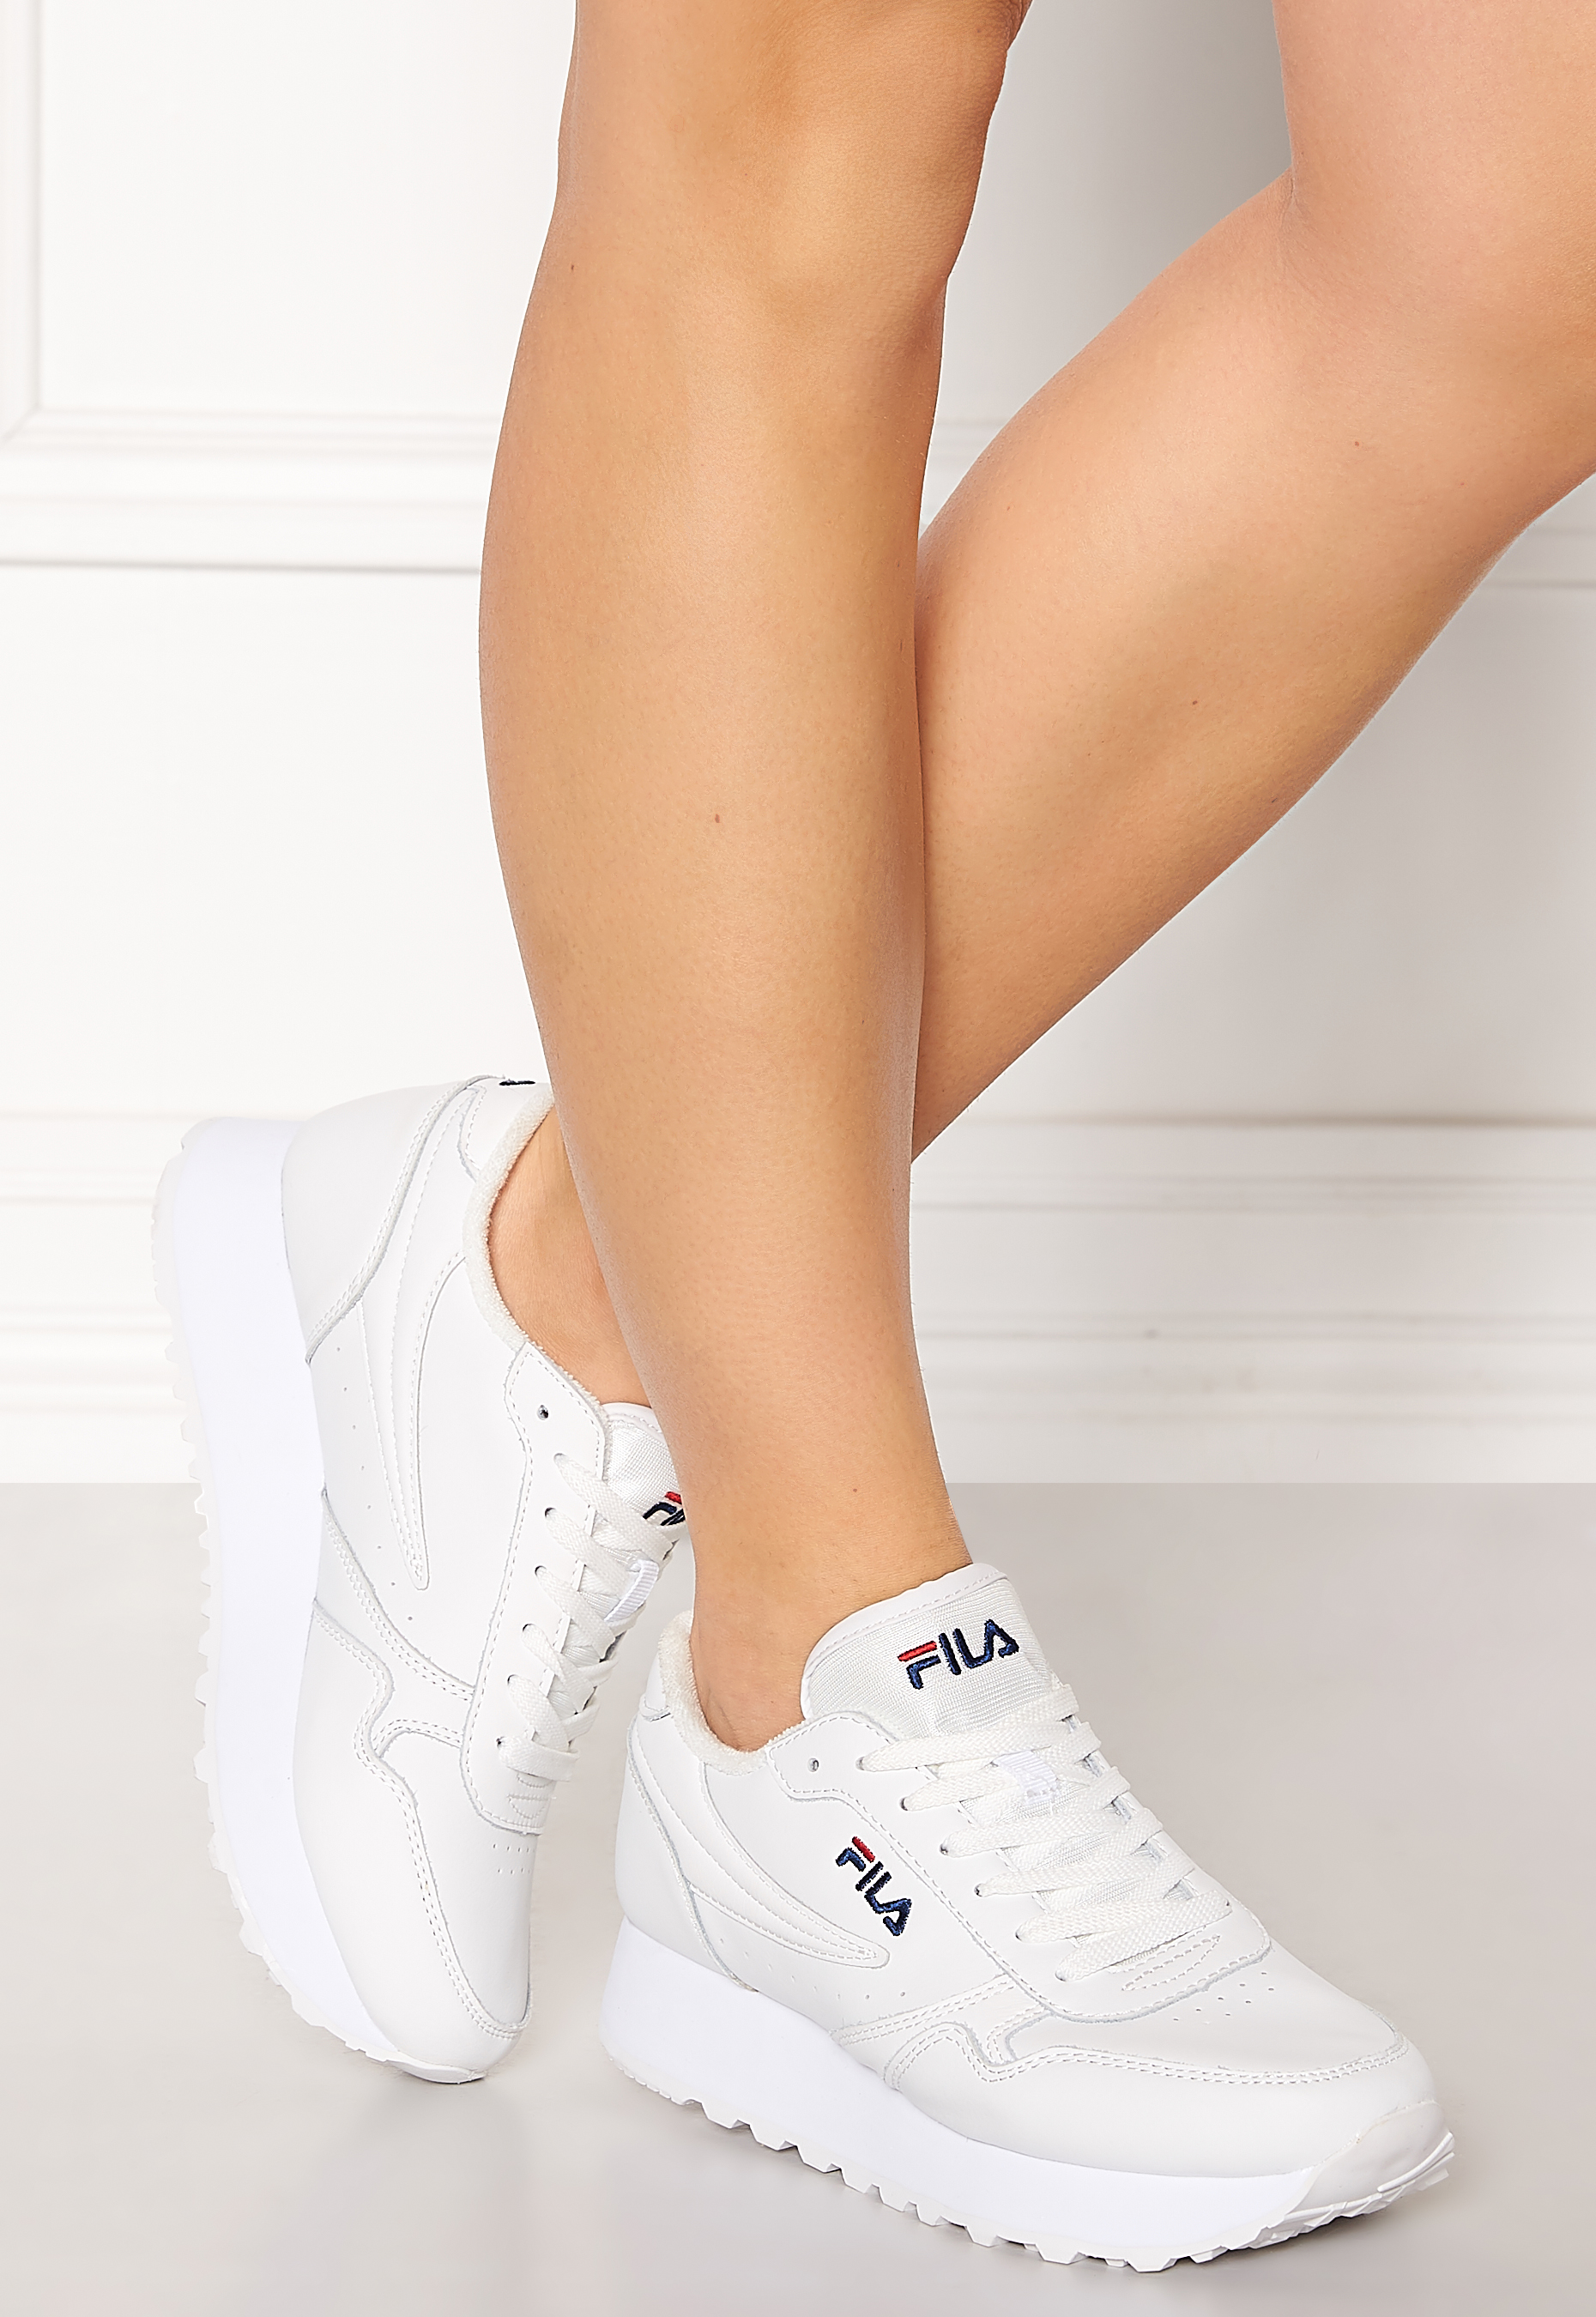 FILA Orbit Zeppa L Shoes White - Bubbleroom